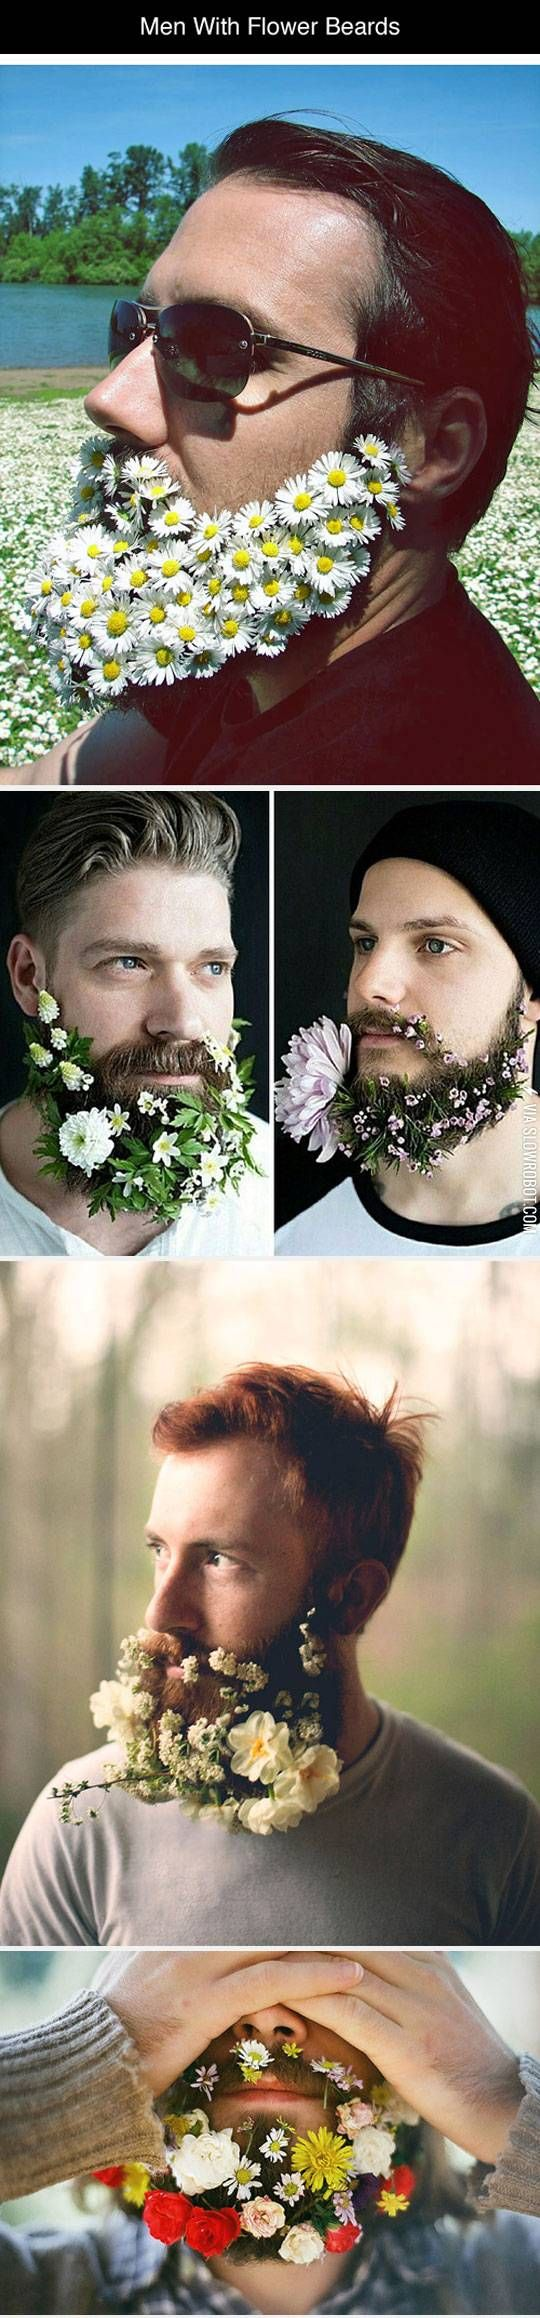 Men with flower beards.